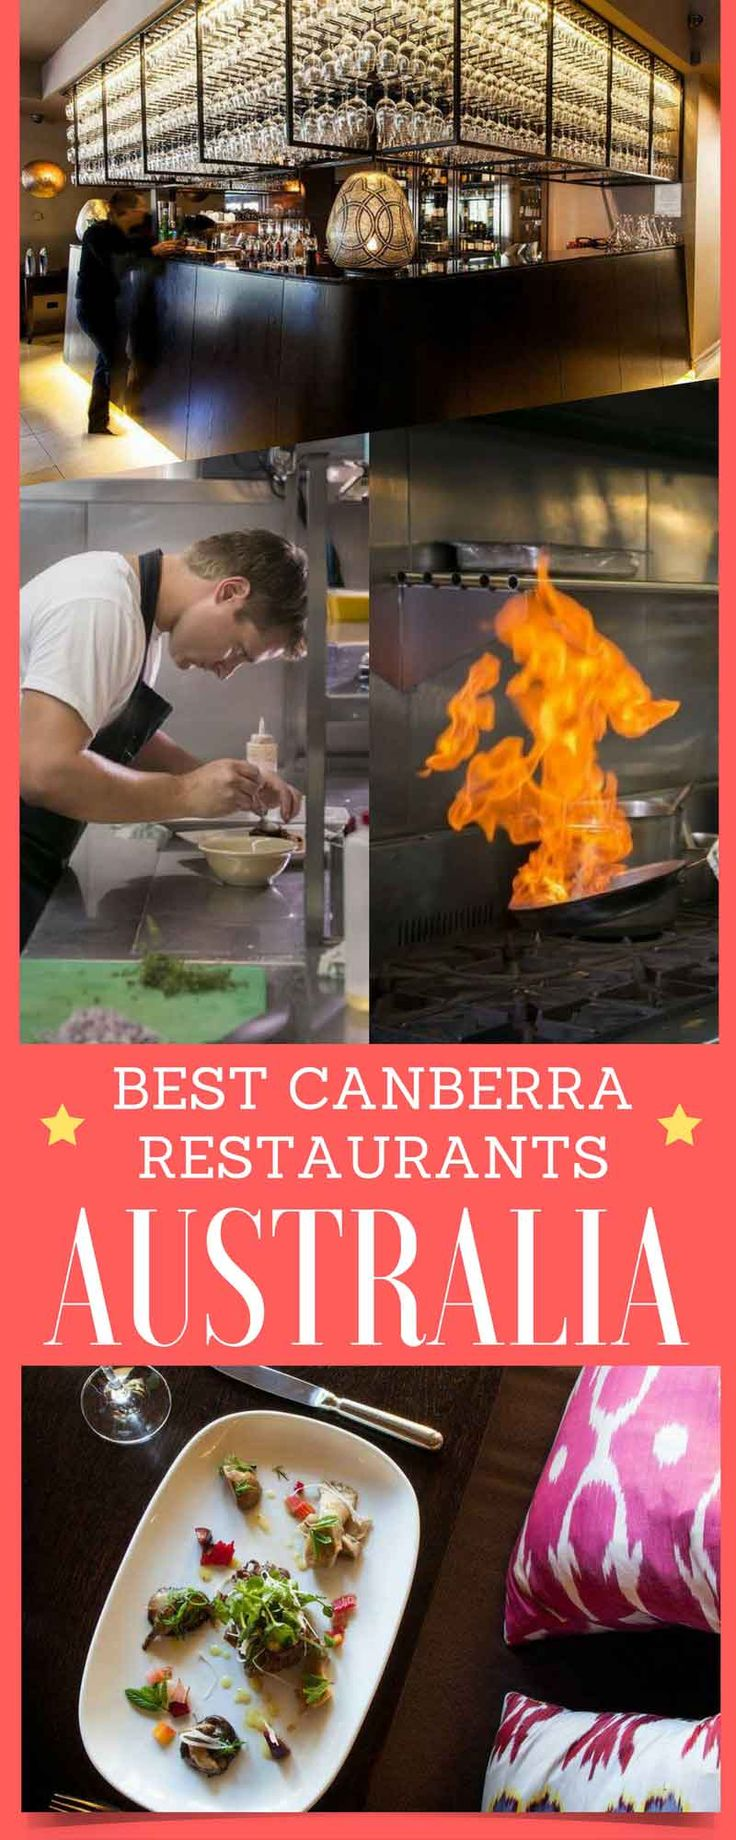 Best Canberra restaurants. It wasn't my fault. At least, probably not. Back in 2010, when Australian Traveller magazine presented the 100 Greatest Australian Gourmet Experiences